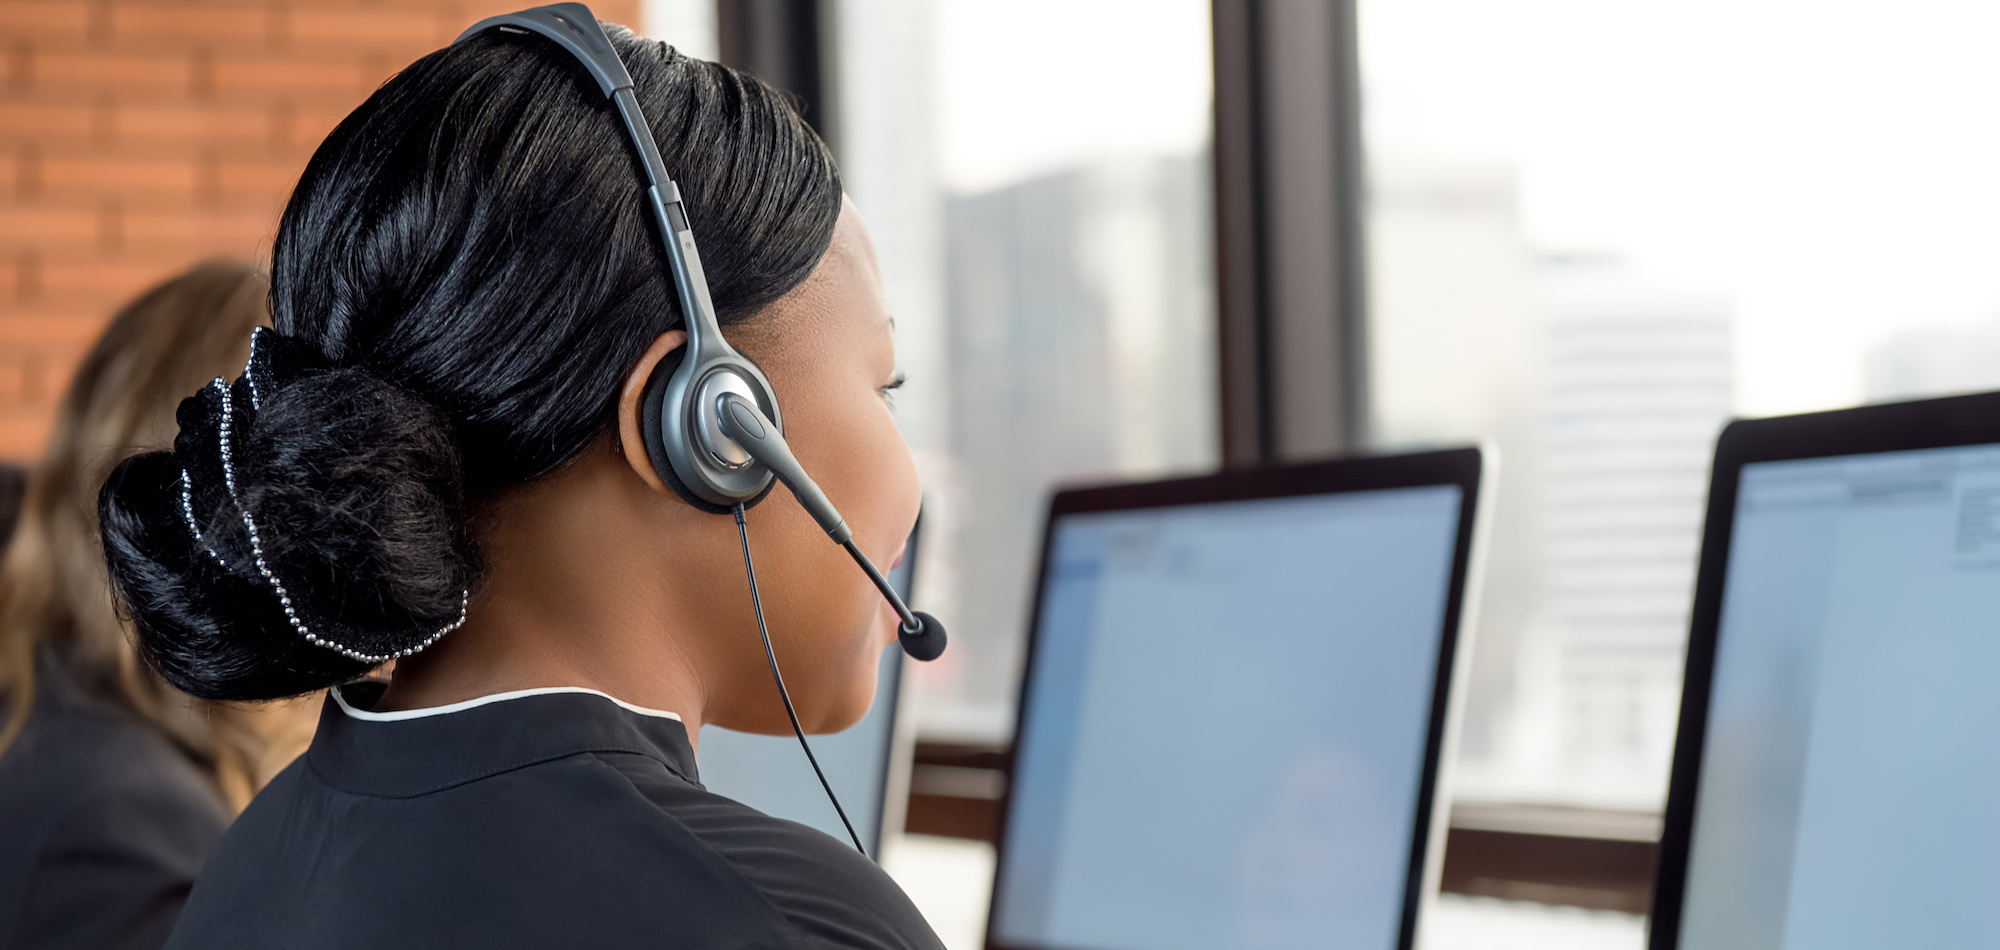 Heritage Medical Associates Improved Access in their Call Center